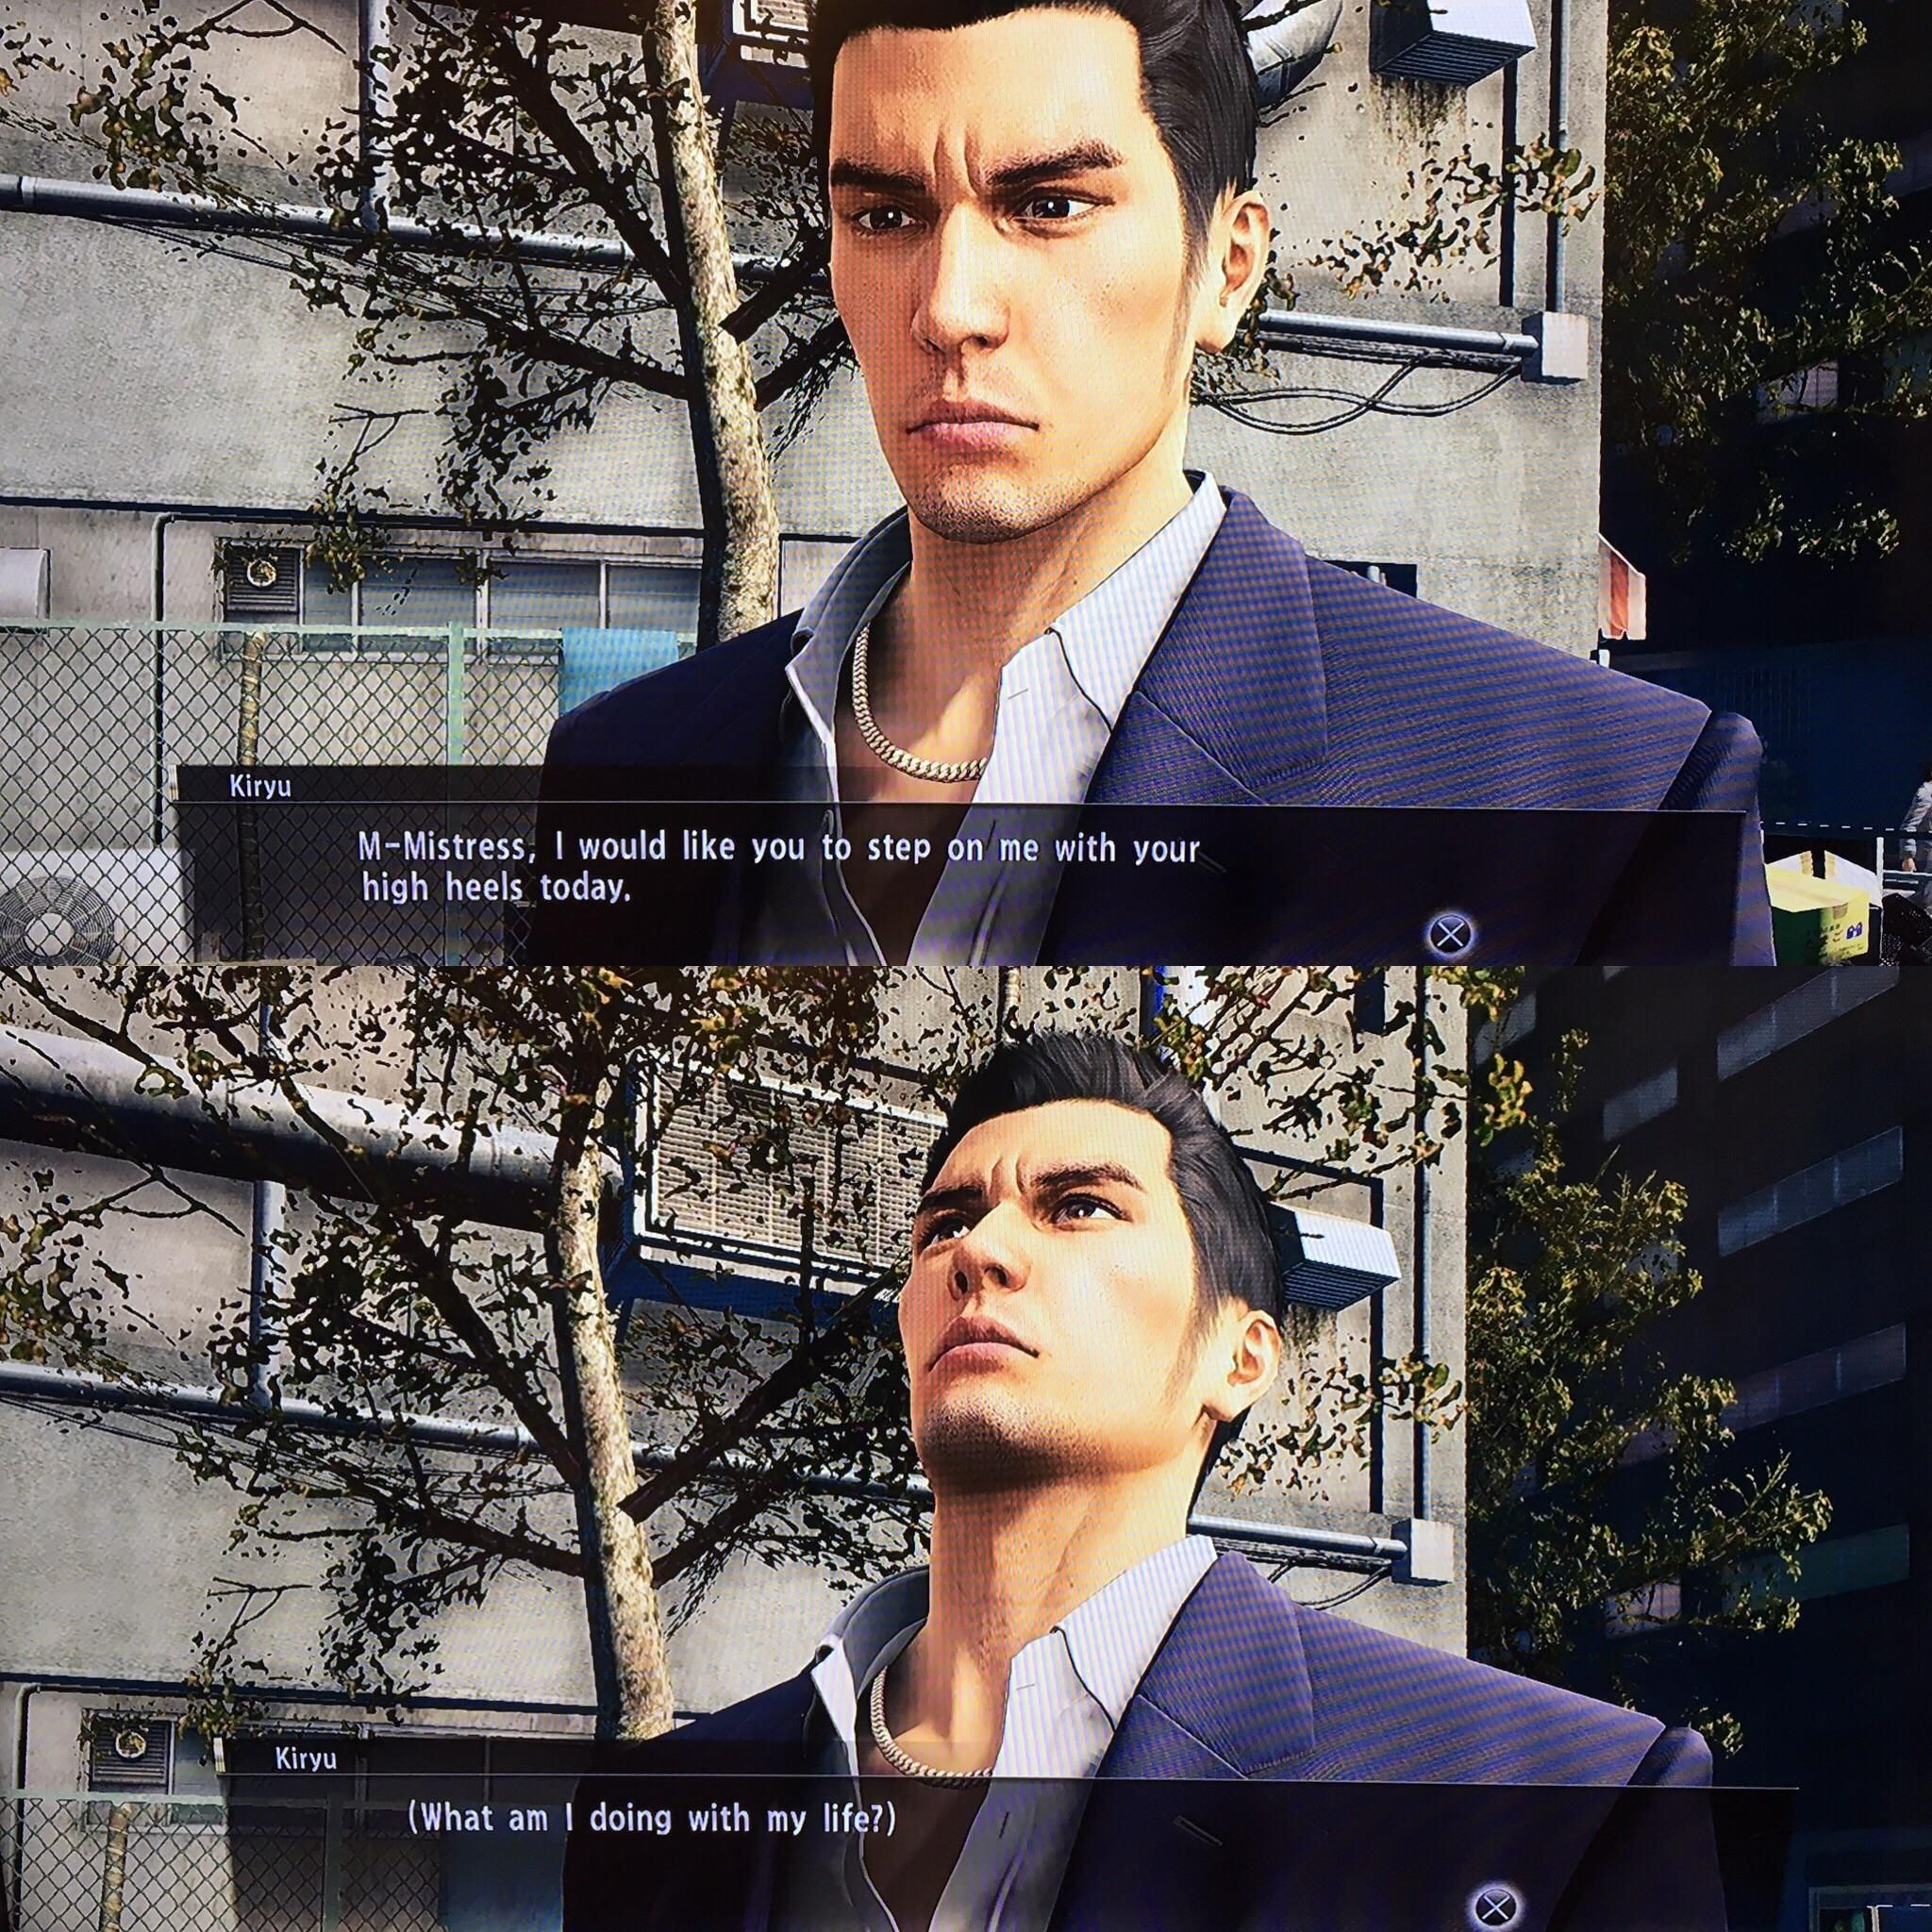 Yakuza 0 has some of the best and most realistic dialogue